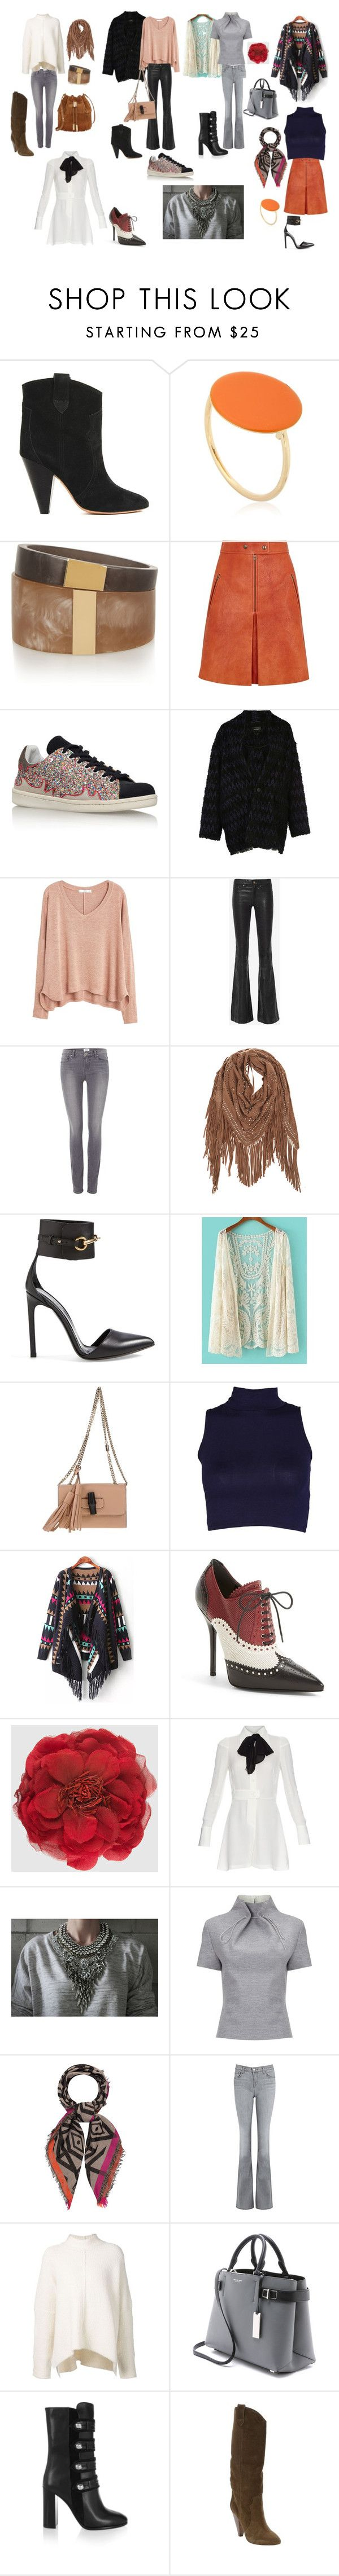 """bohem şık"" by eser-morgul on Polyvore featuring moda, Isabel Marant, MANGO, rag & bone, Paige Denim, Gucci, Maison Margiela, J. JS Lee, Fraas ve J Brand"